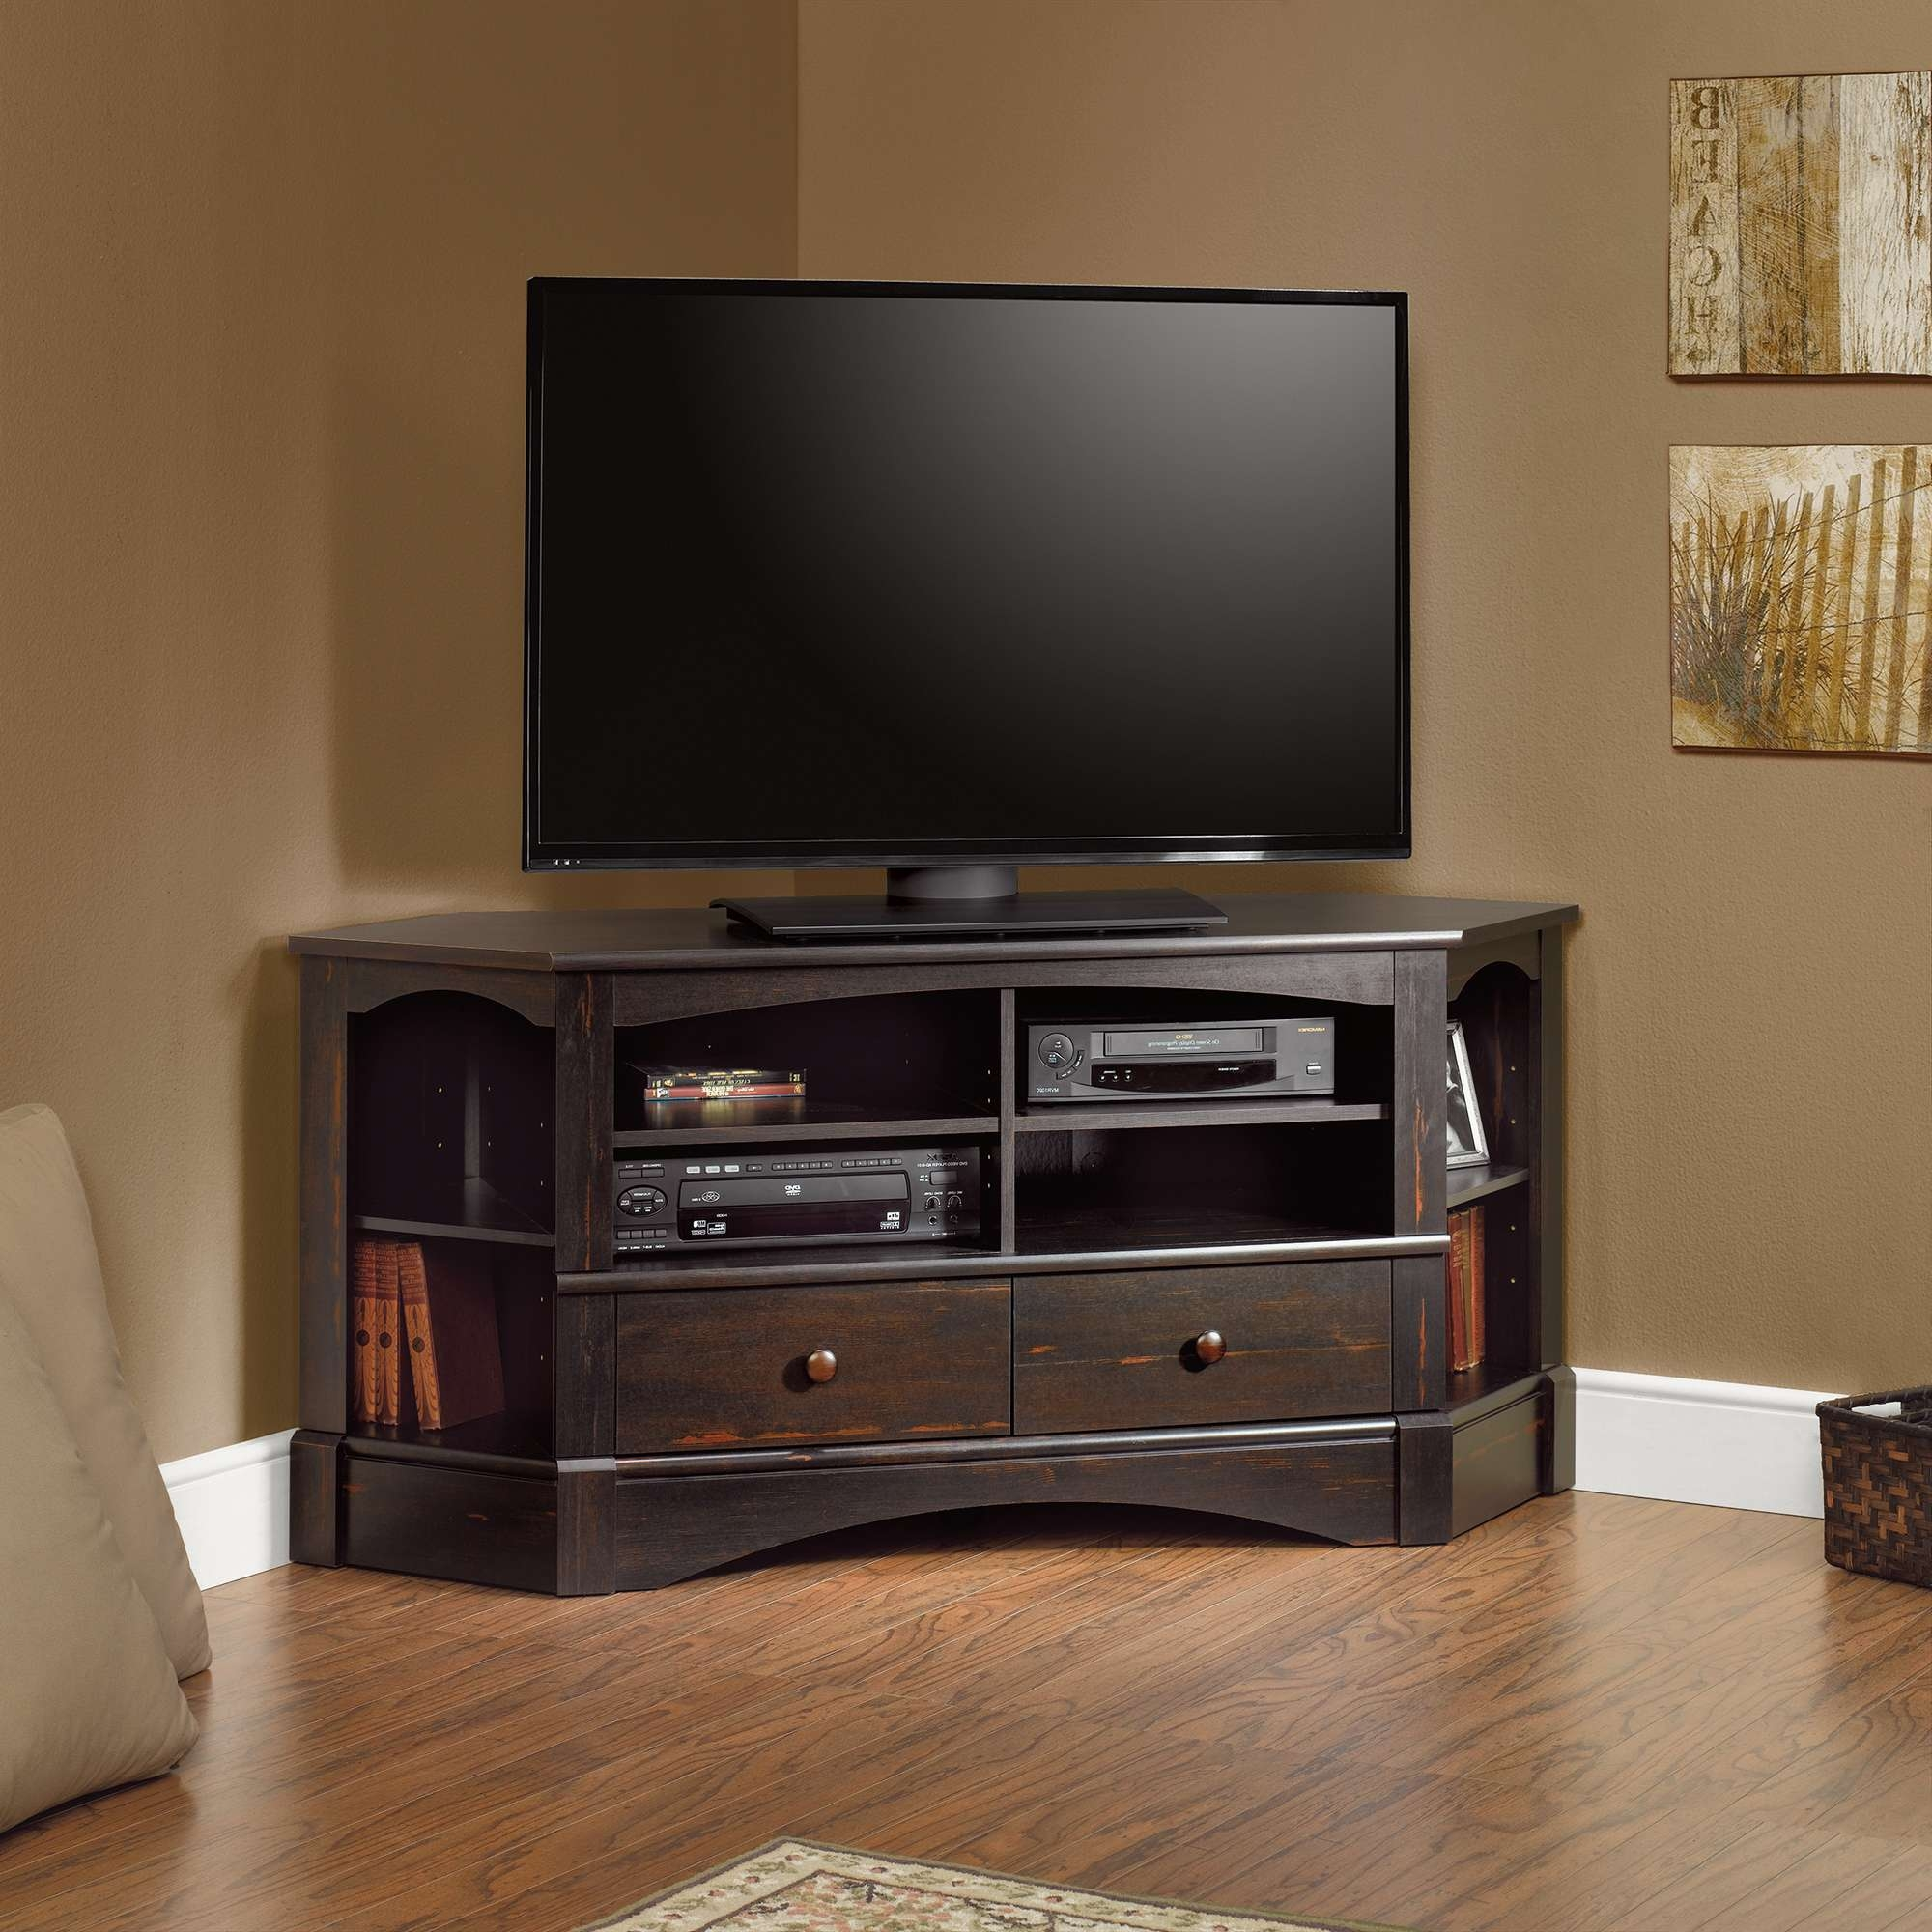 Harbor View | Corner Entertainment Credenza | 402902 | Sauder Regarding Corner Tv Stands With Drawers (View 2 of 15)